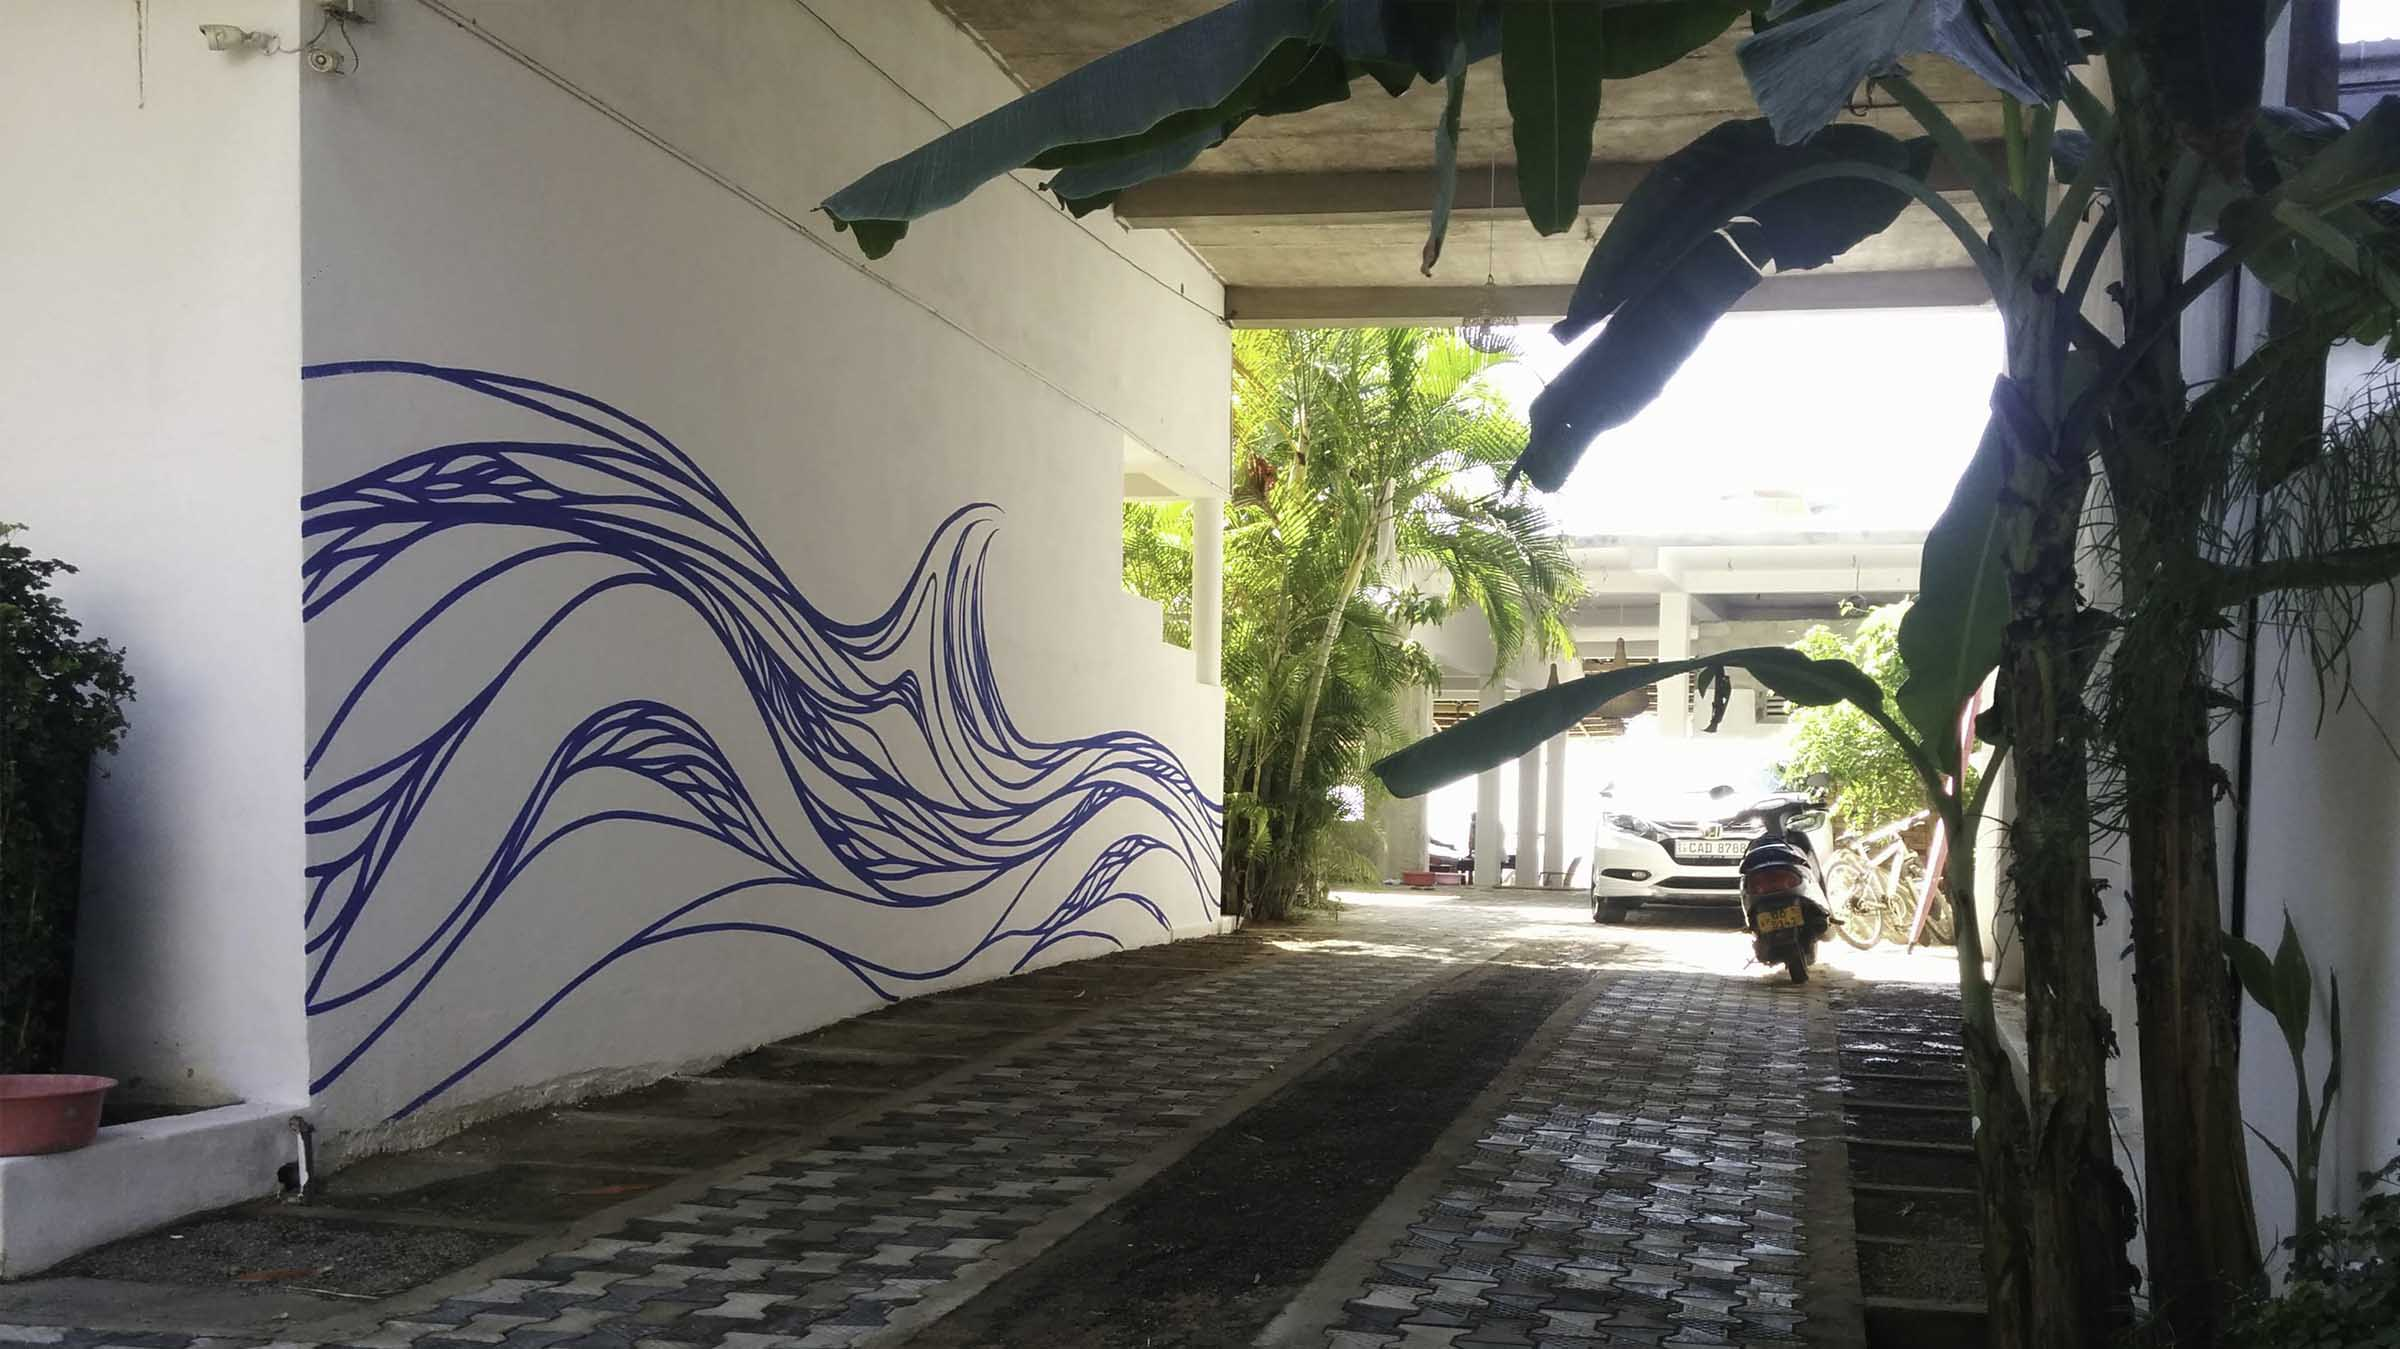 waves street art graffiti